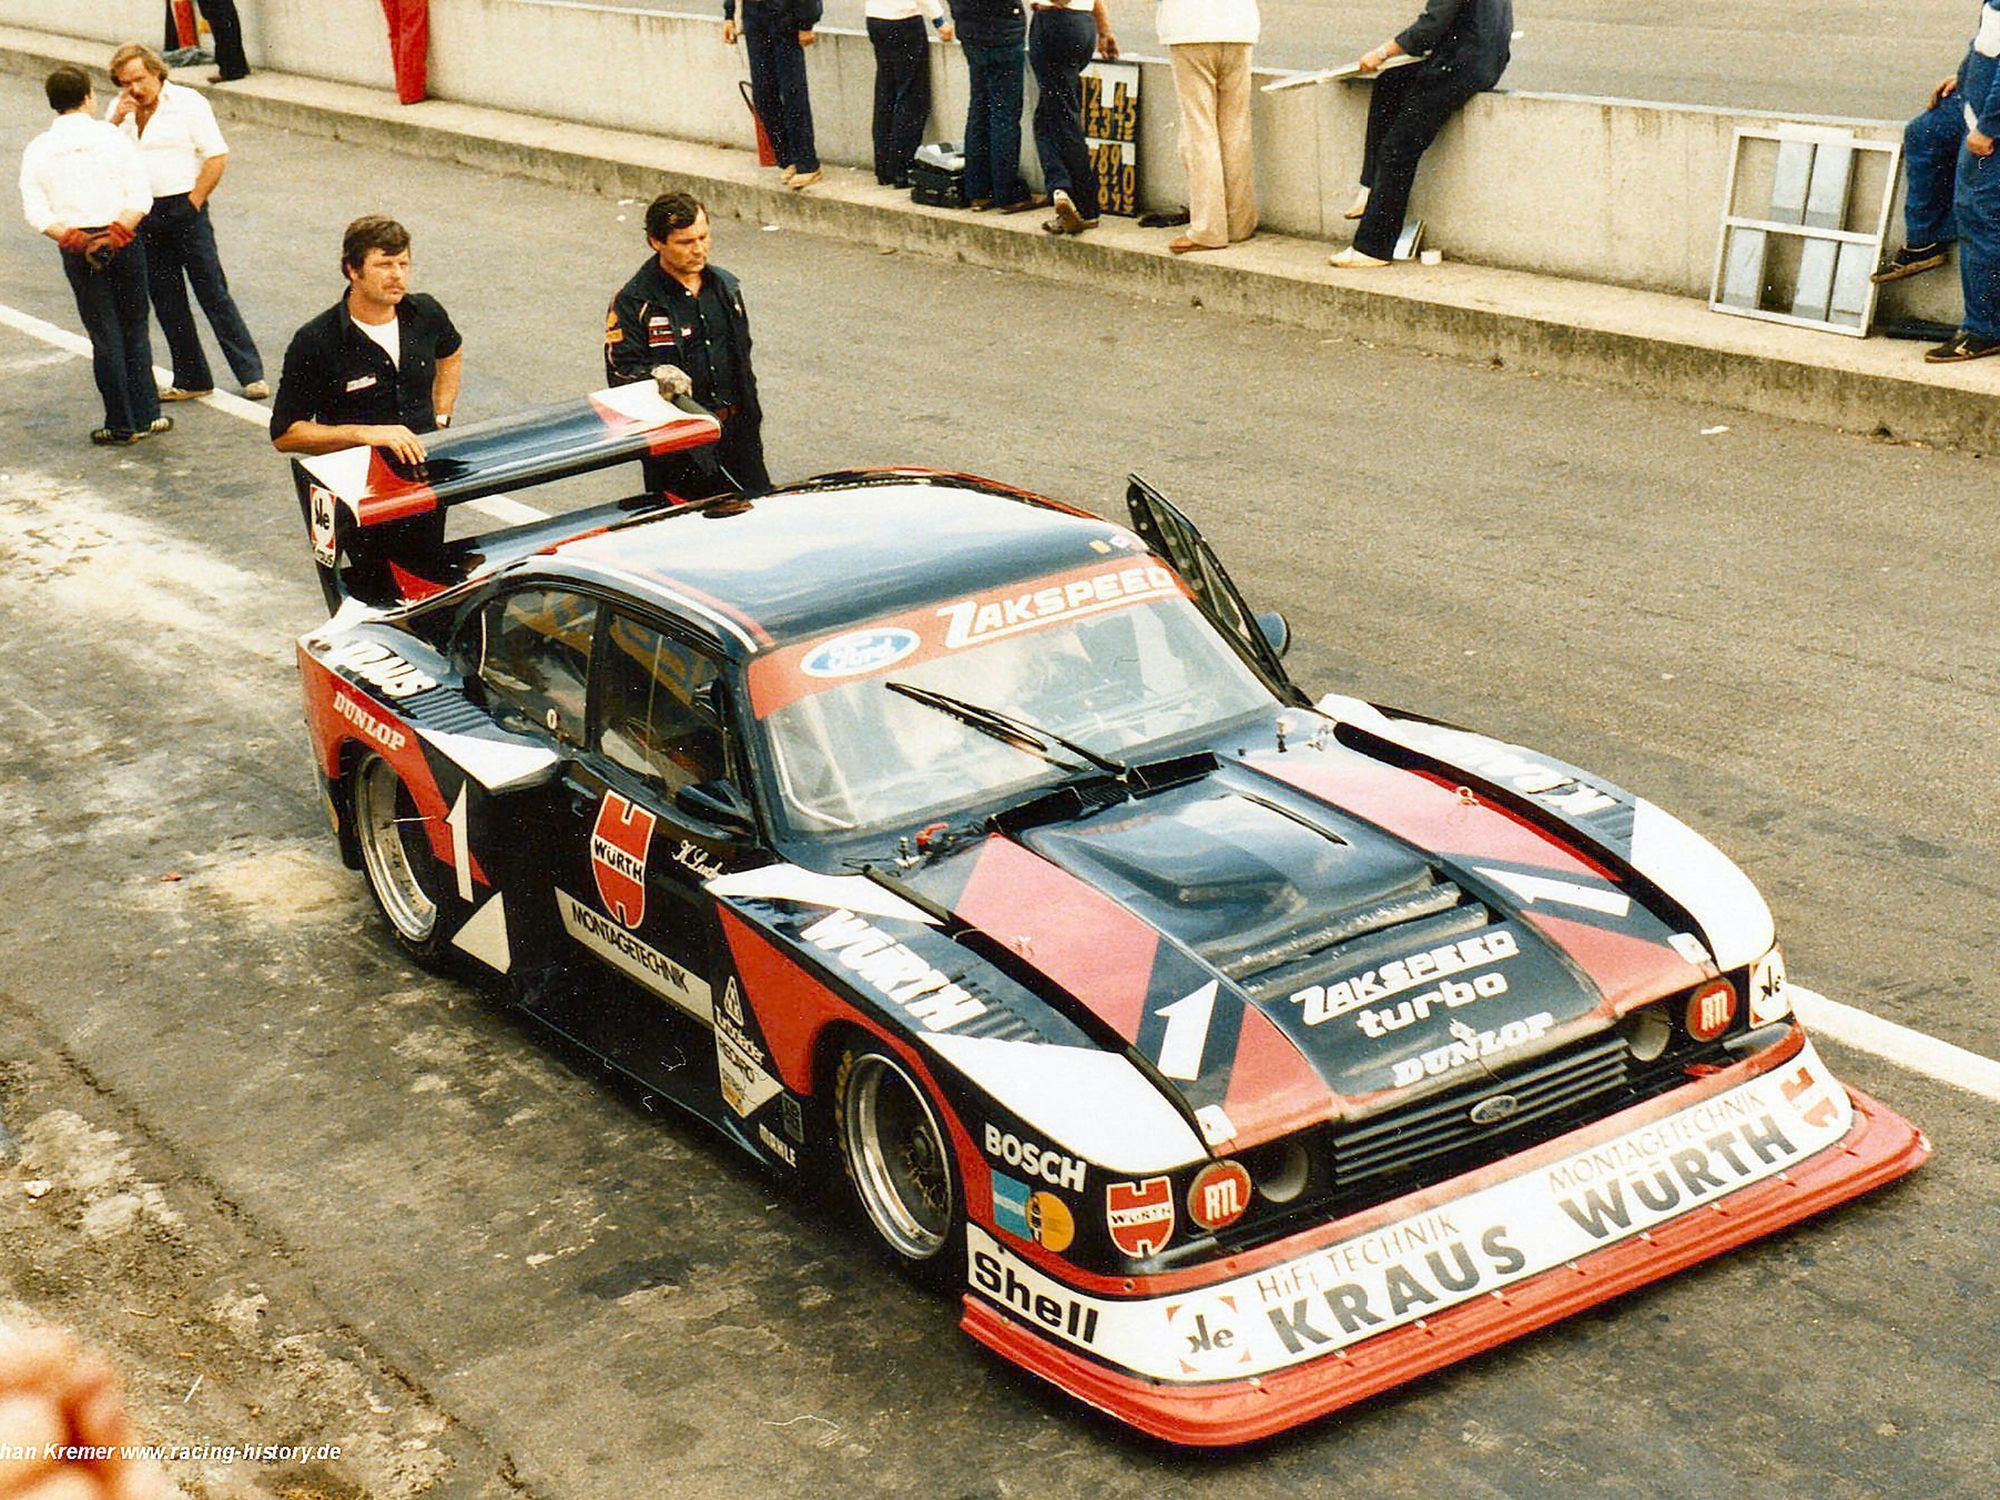 Will Race Cars Ever Look This Honest And Exciting Ever Again Ford Capri Ford Motorsport Touring Car Racing